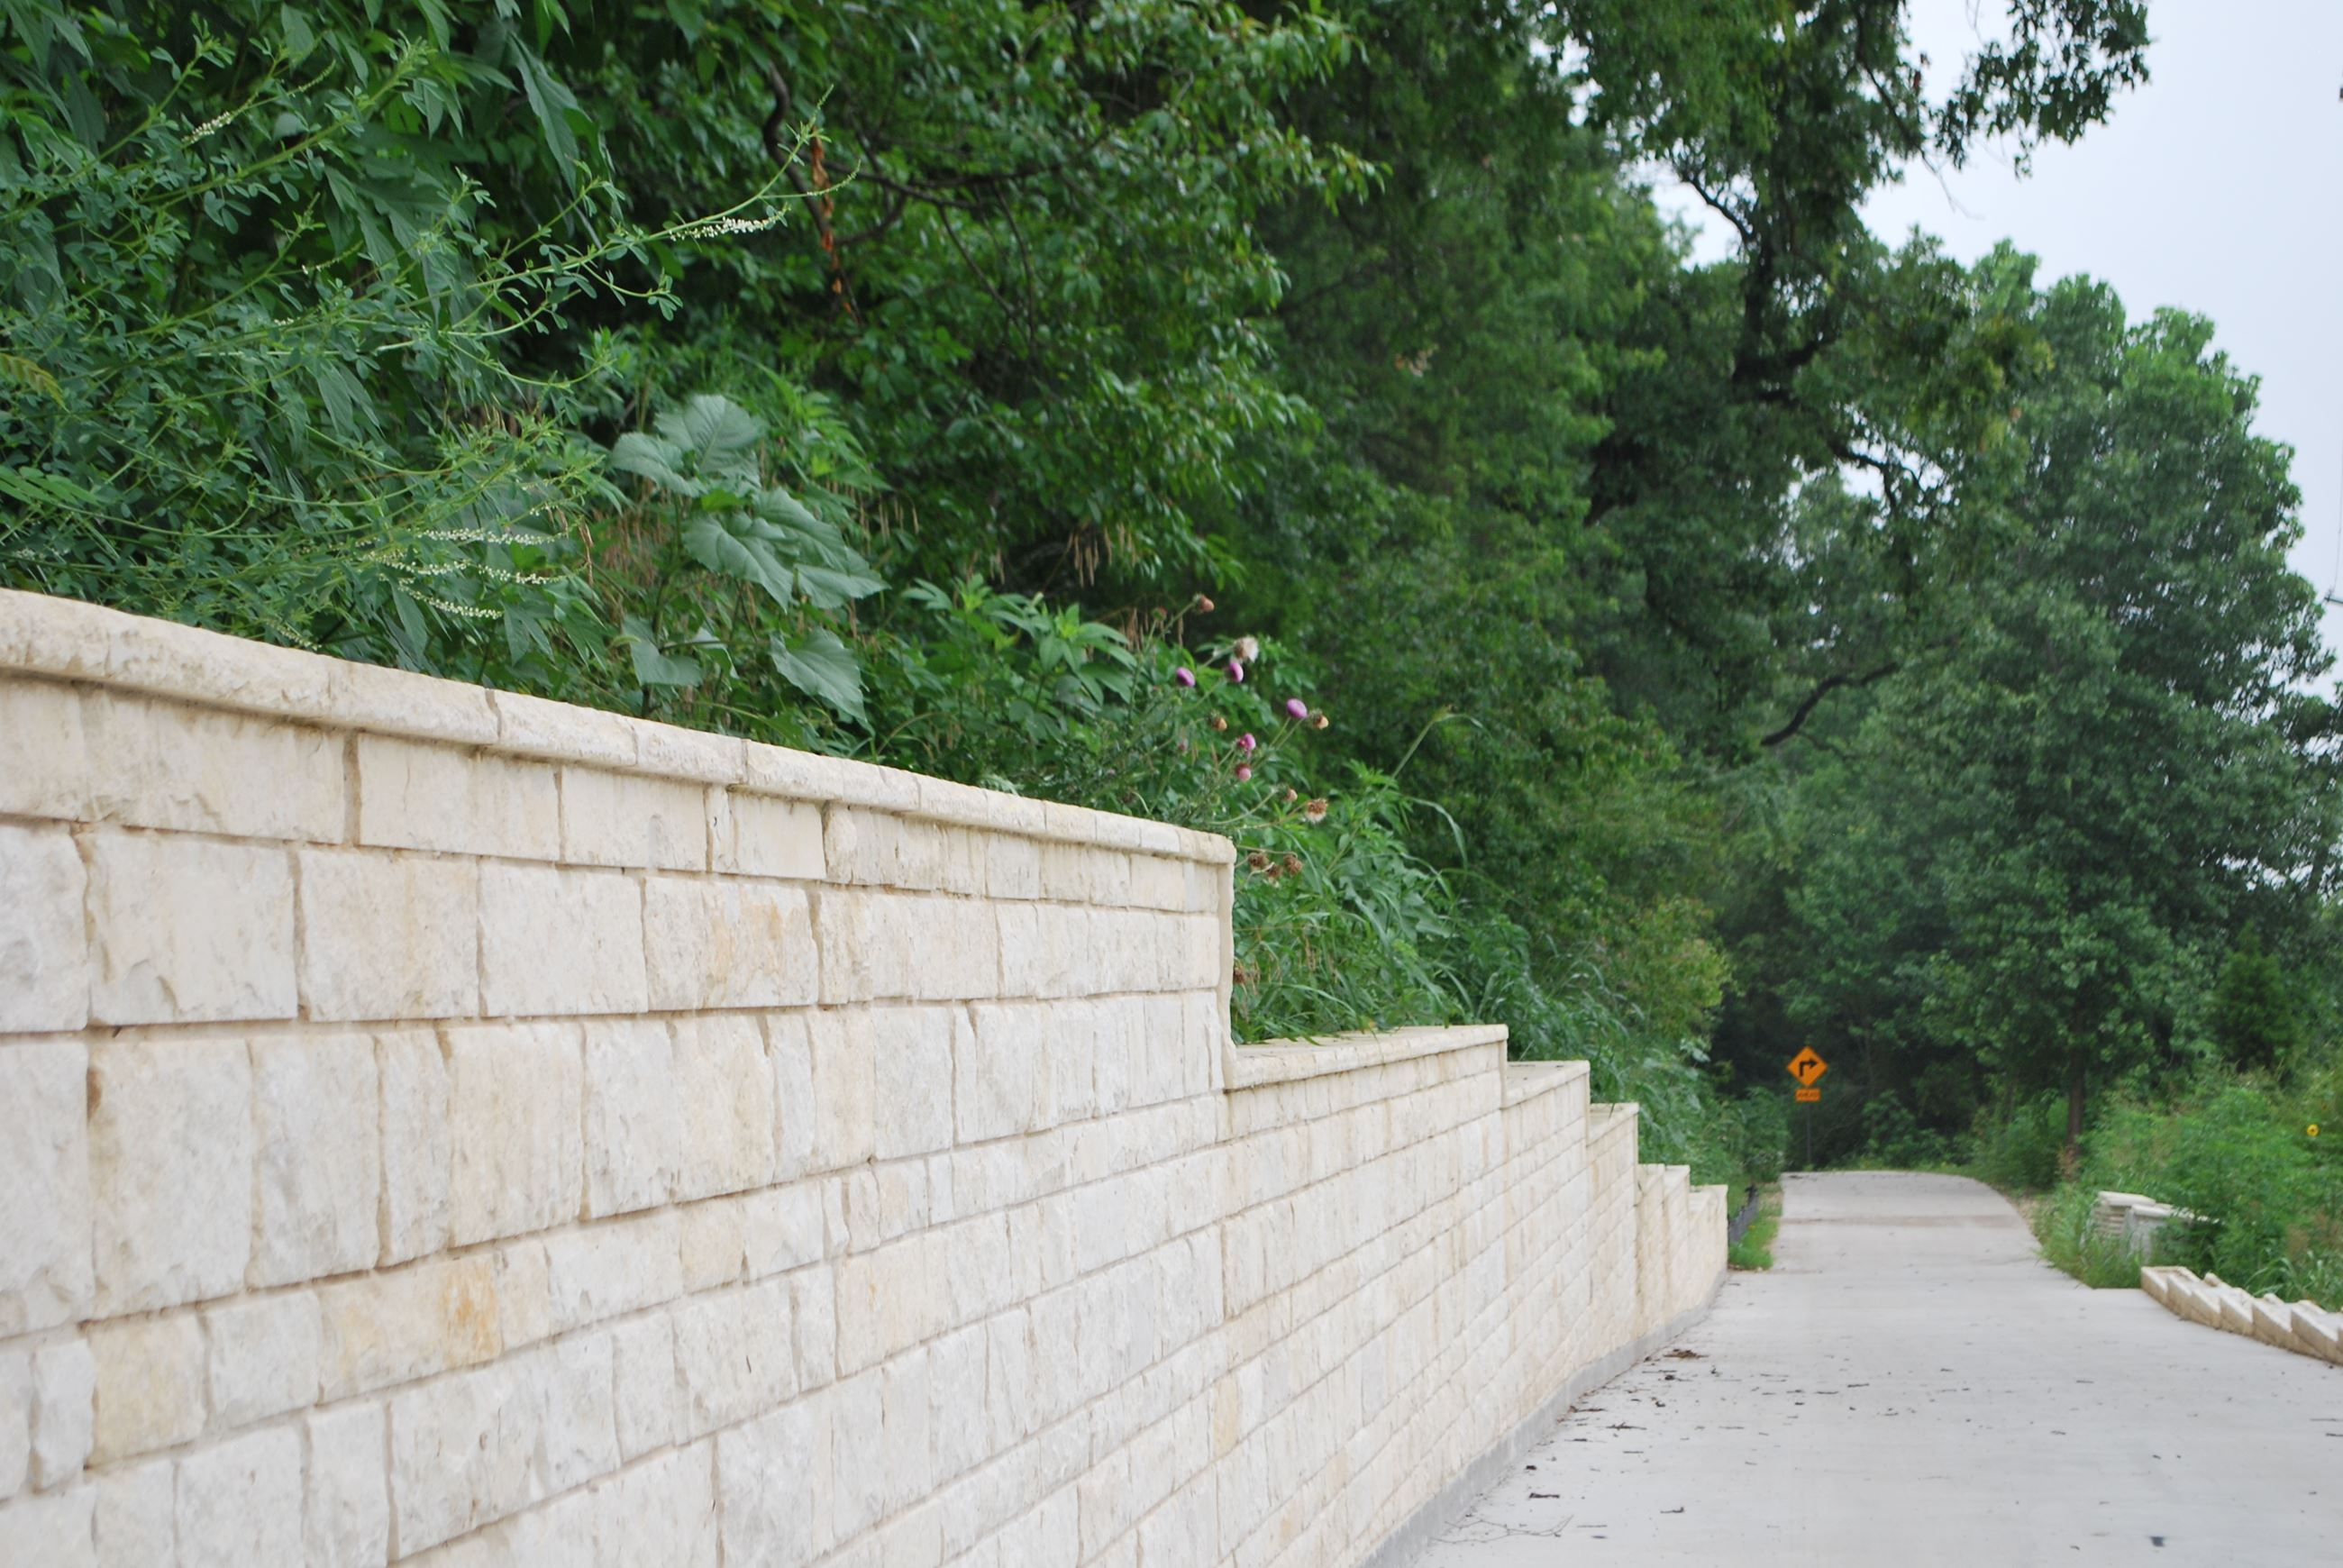 Granite wall along paved trail.